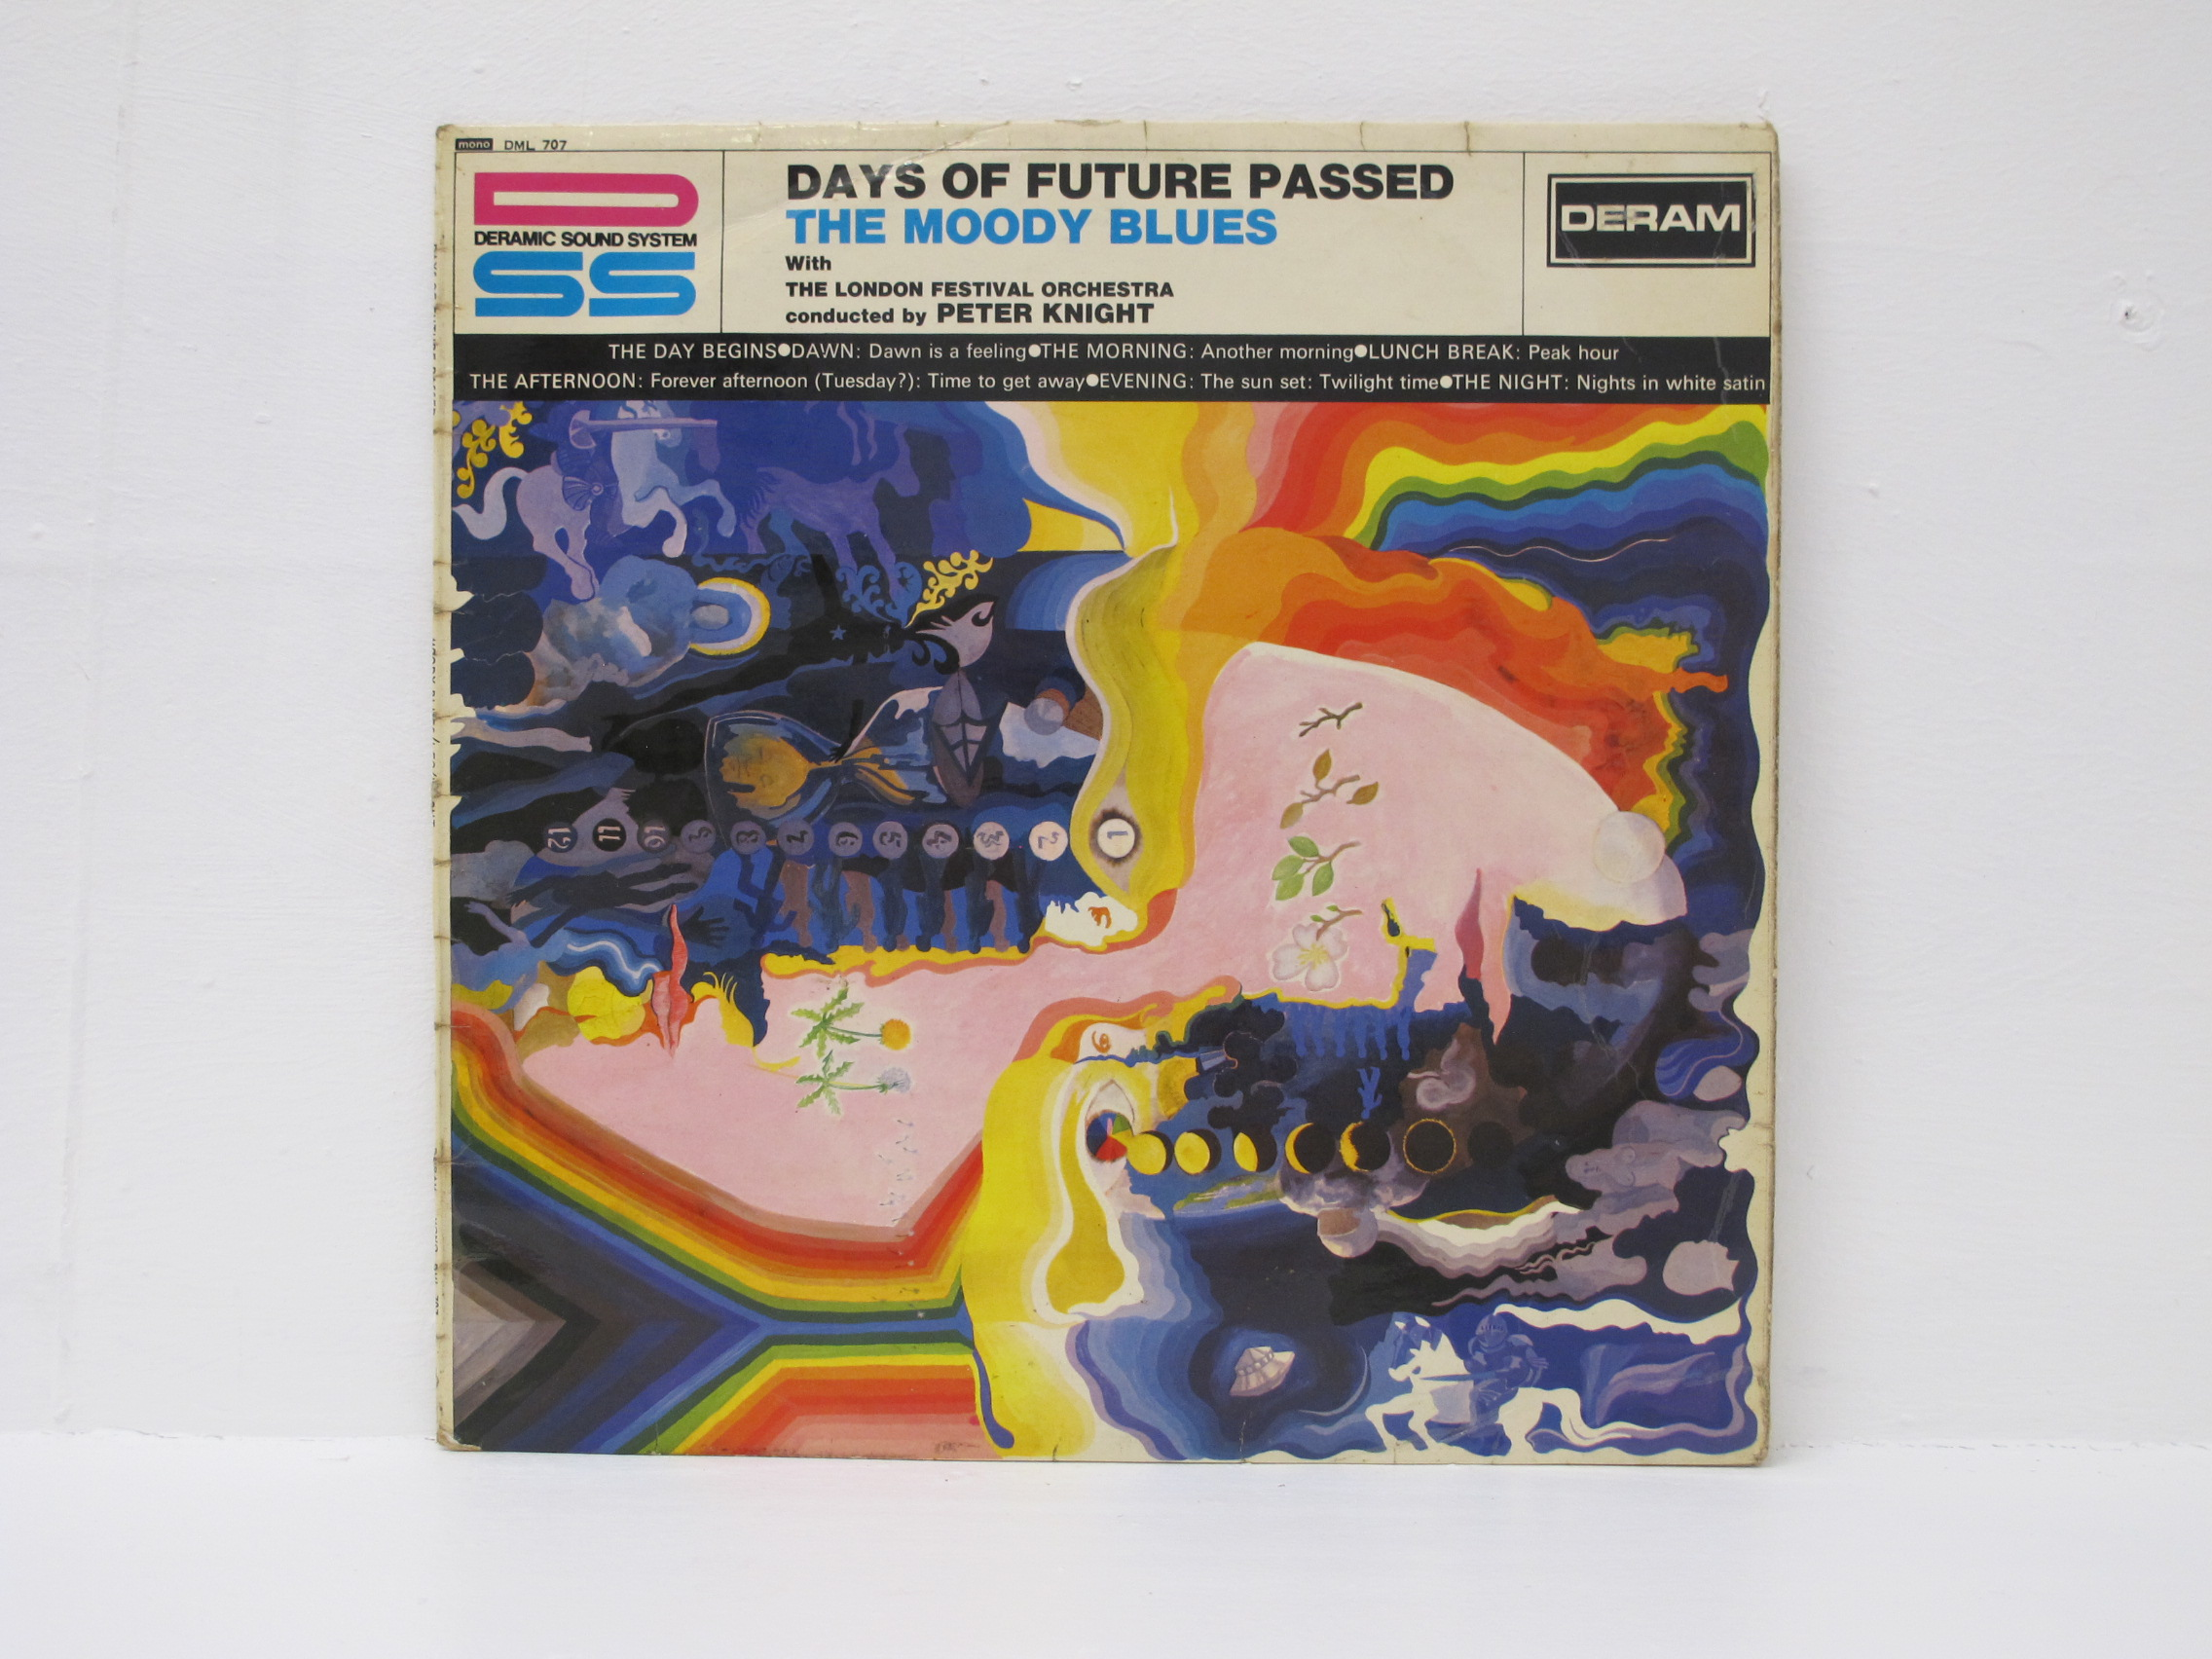 The Moody Blues - Days of Future Passed, The moody blues